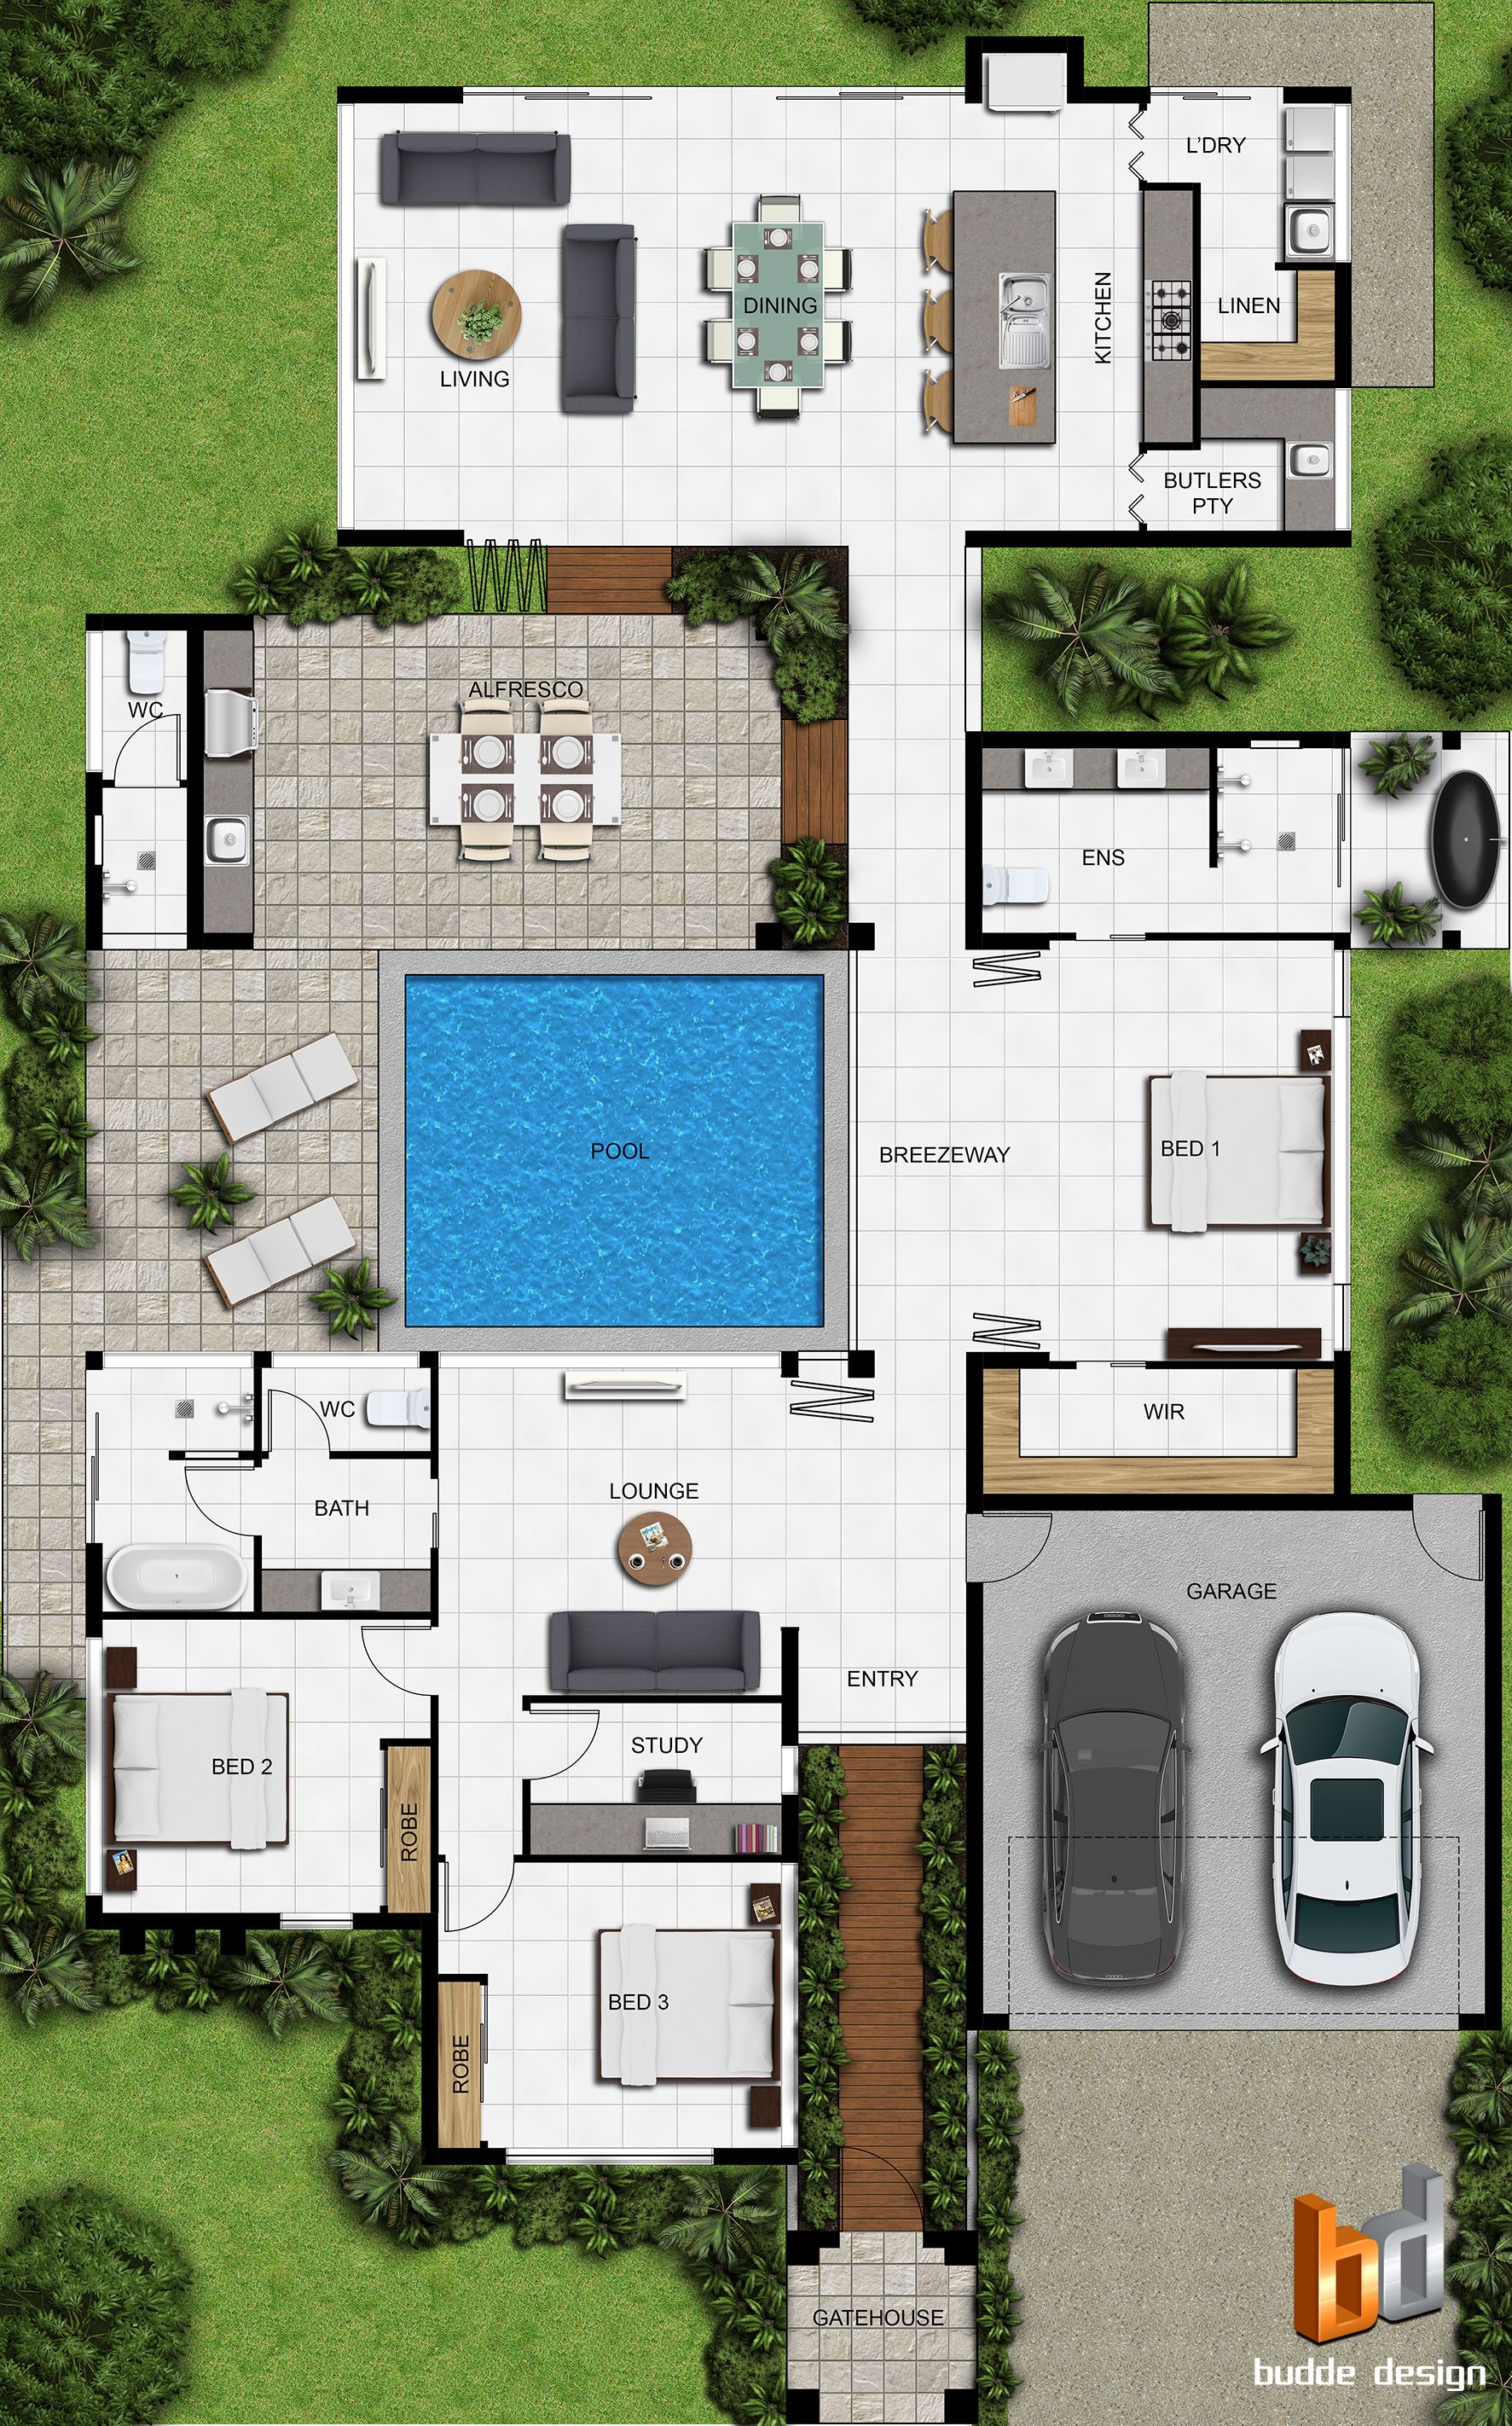 2d Colour Floor Plan For A Building Company Palm Cove Qld Pool House Plans House Construction Plan House Layout Plans